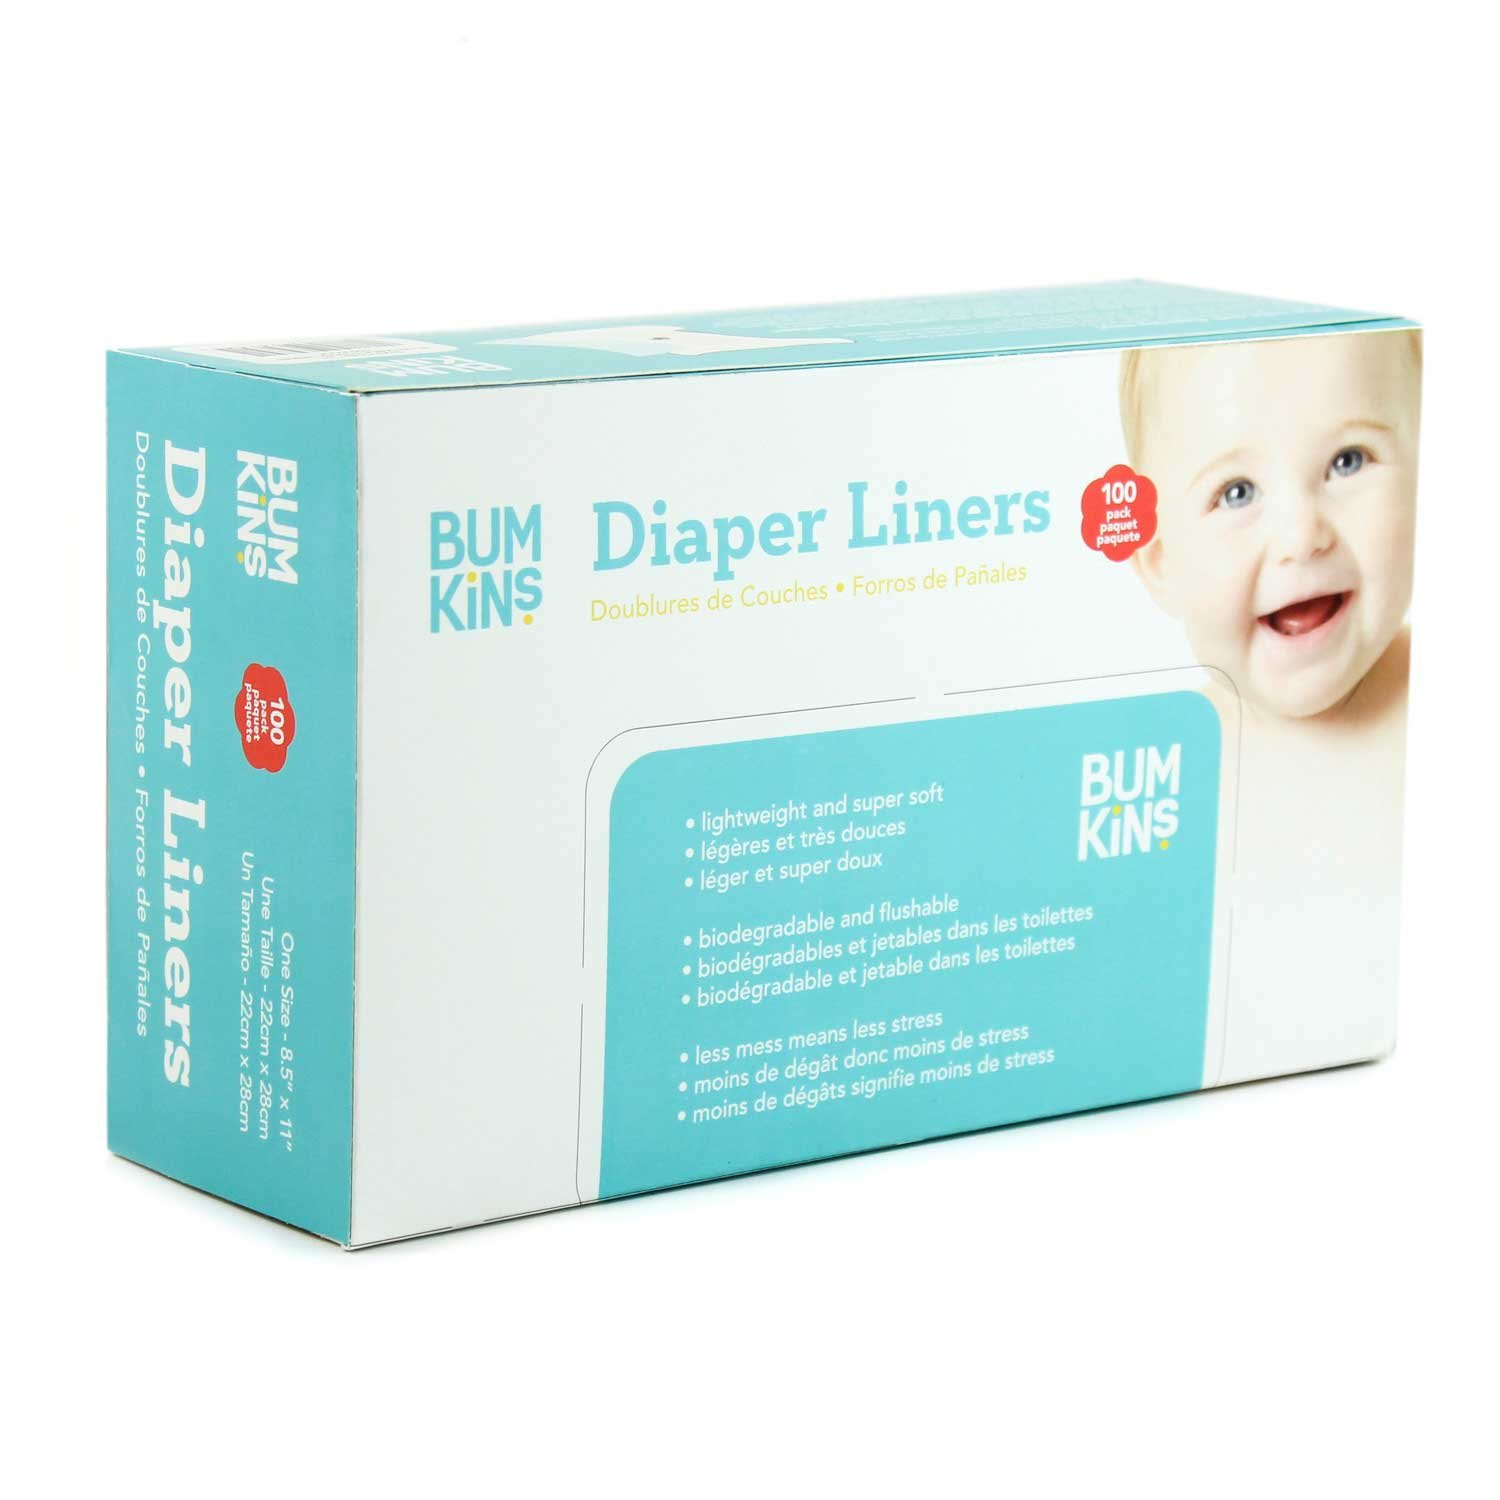 Bumkins Flushable Diaper Liner, Neutral, 100 Count, (Pack of 1)